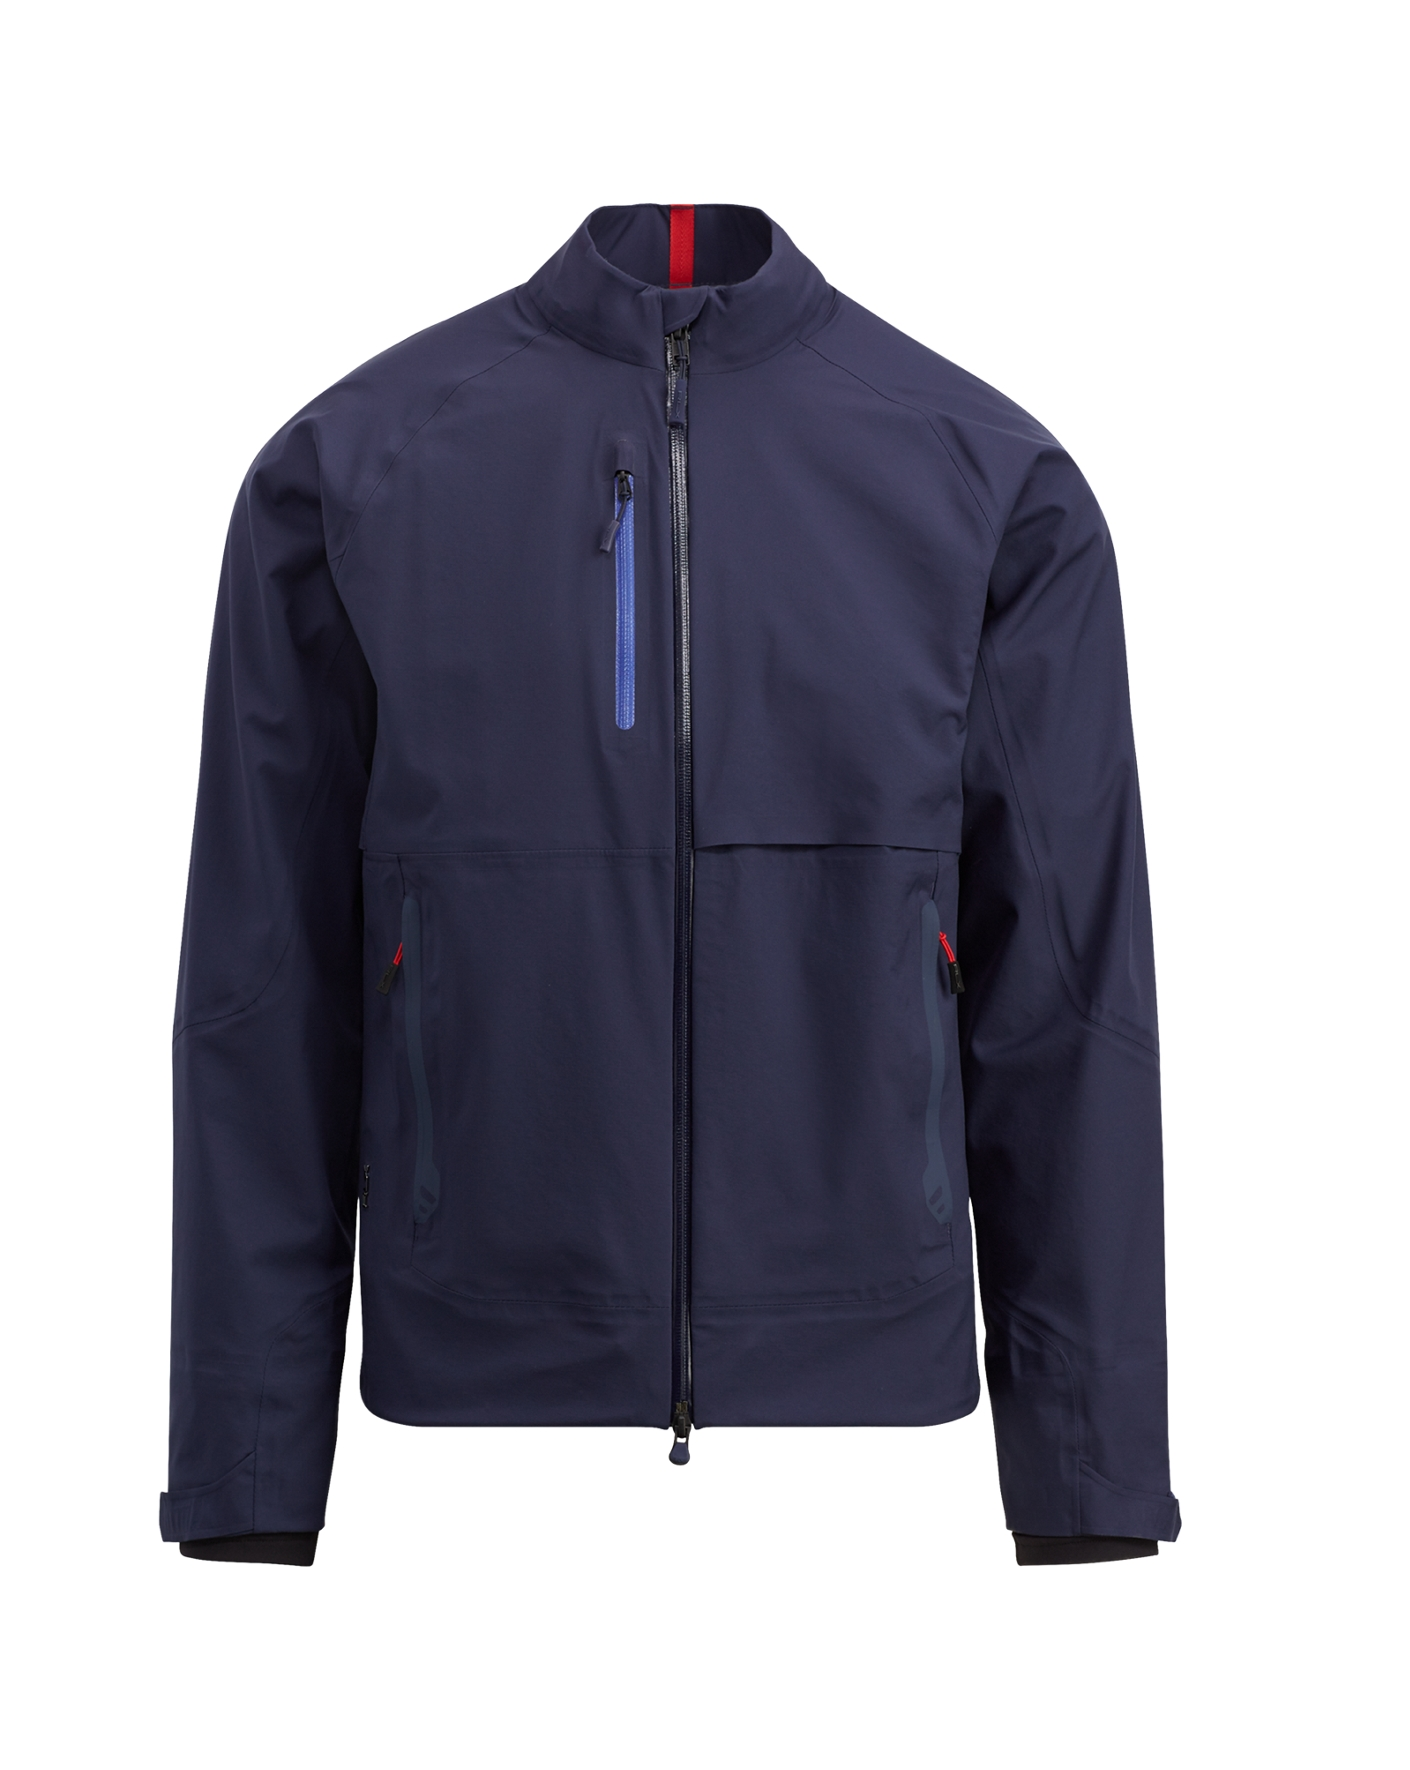 Men's Polo Jackets, Coats & Windbreakers | Polo Ralph Lauren